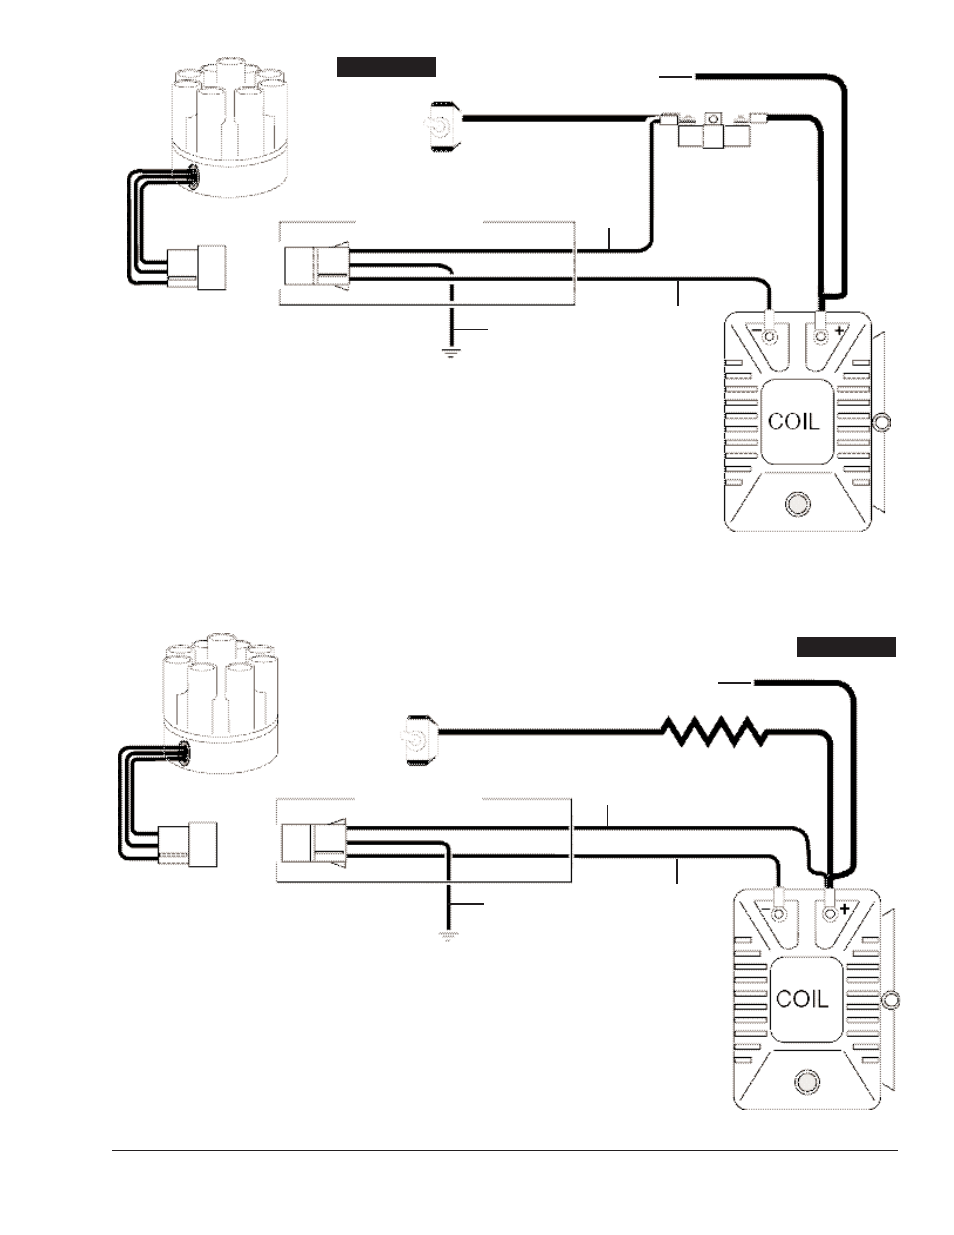 Mallory Ignition Mallory UNILITE ELECTRONIC BREAKERLESS CONVERSION KIT  561_562_563 User Manual | Page 3 / 4